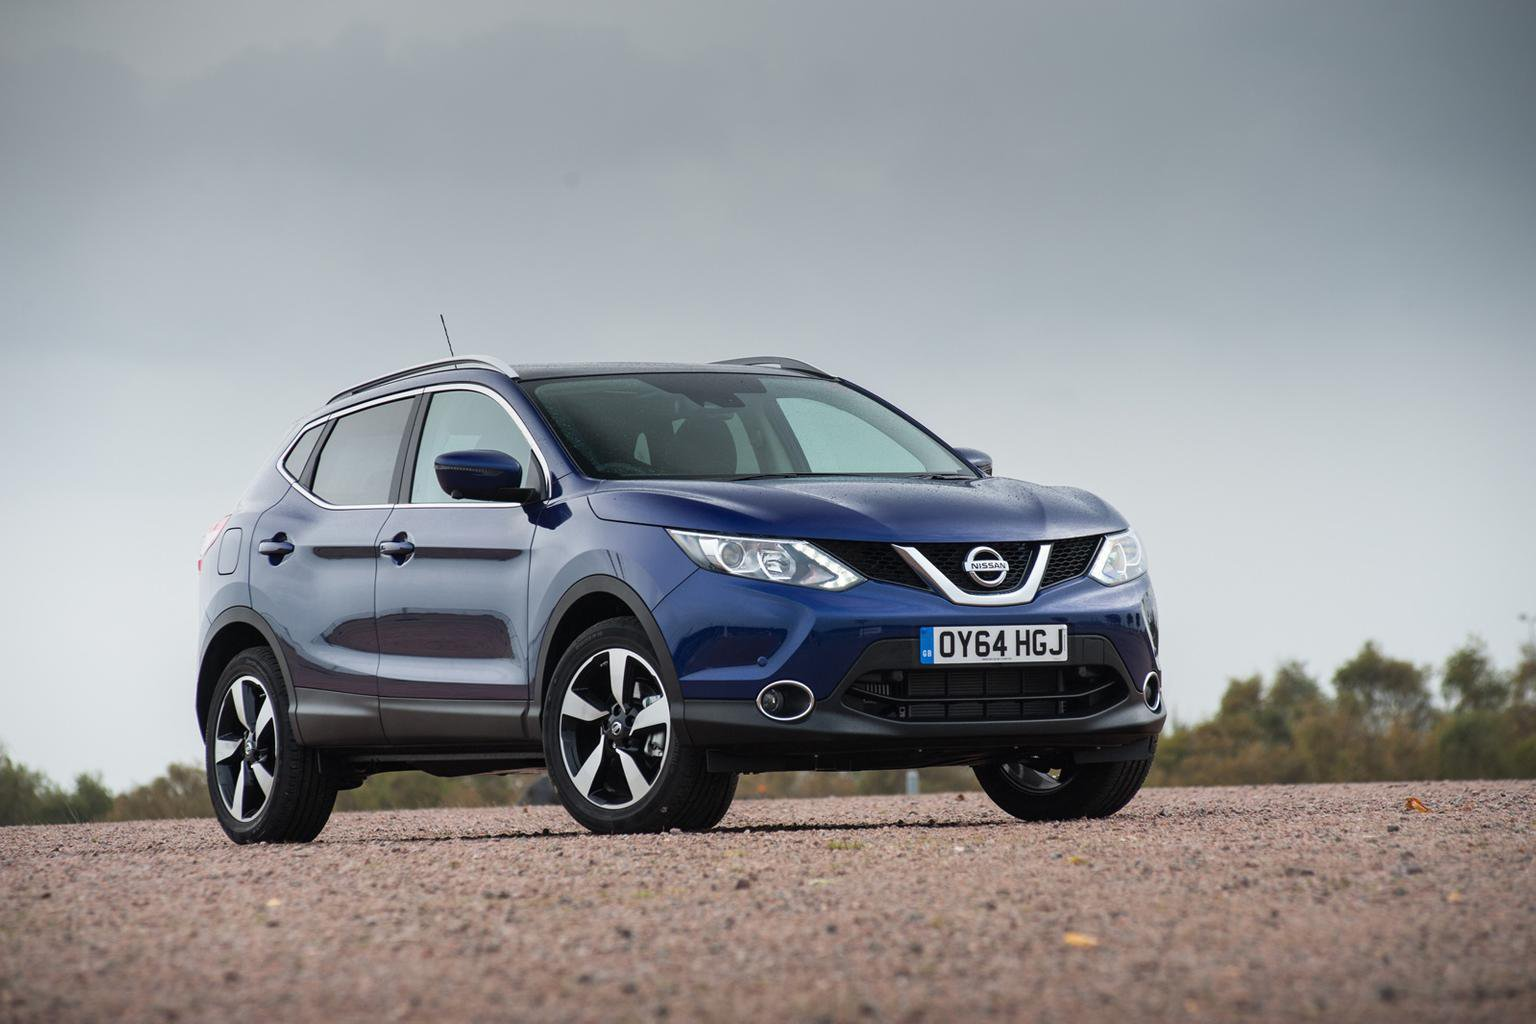 News round-up: Fastest Nissan Qashqai launched, and Suzuki Jimny refreshed